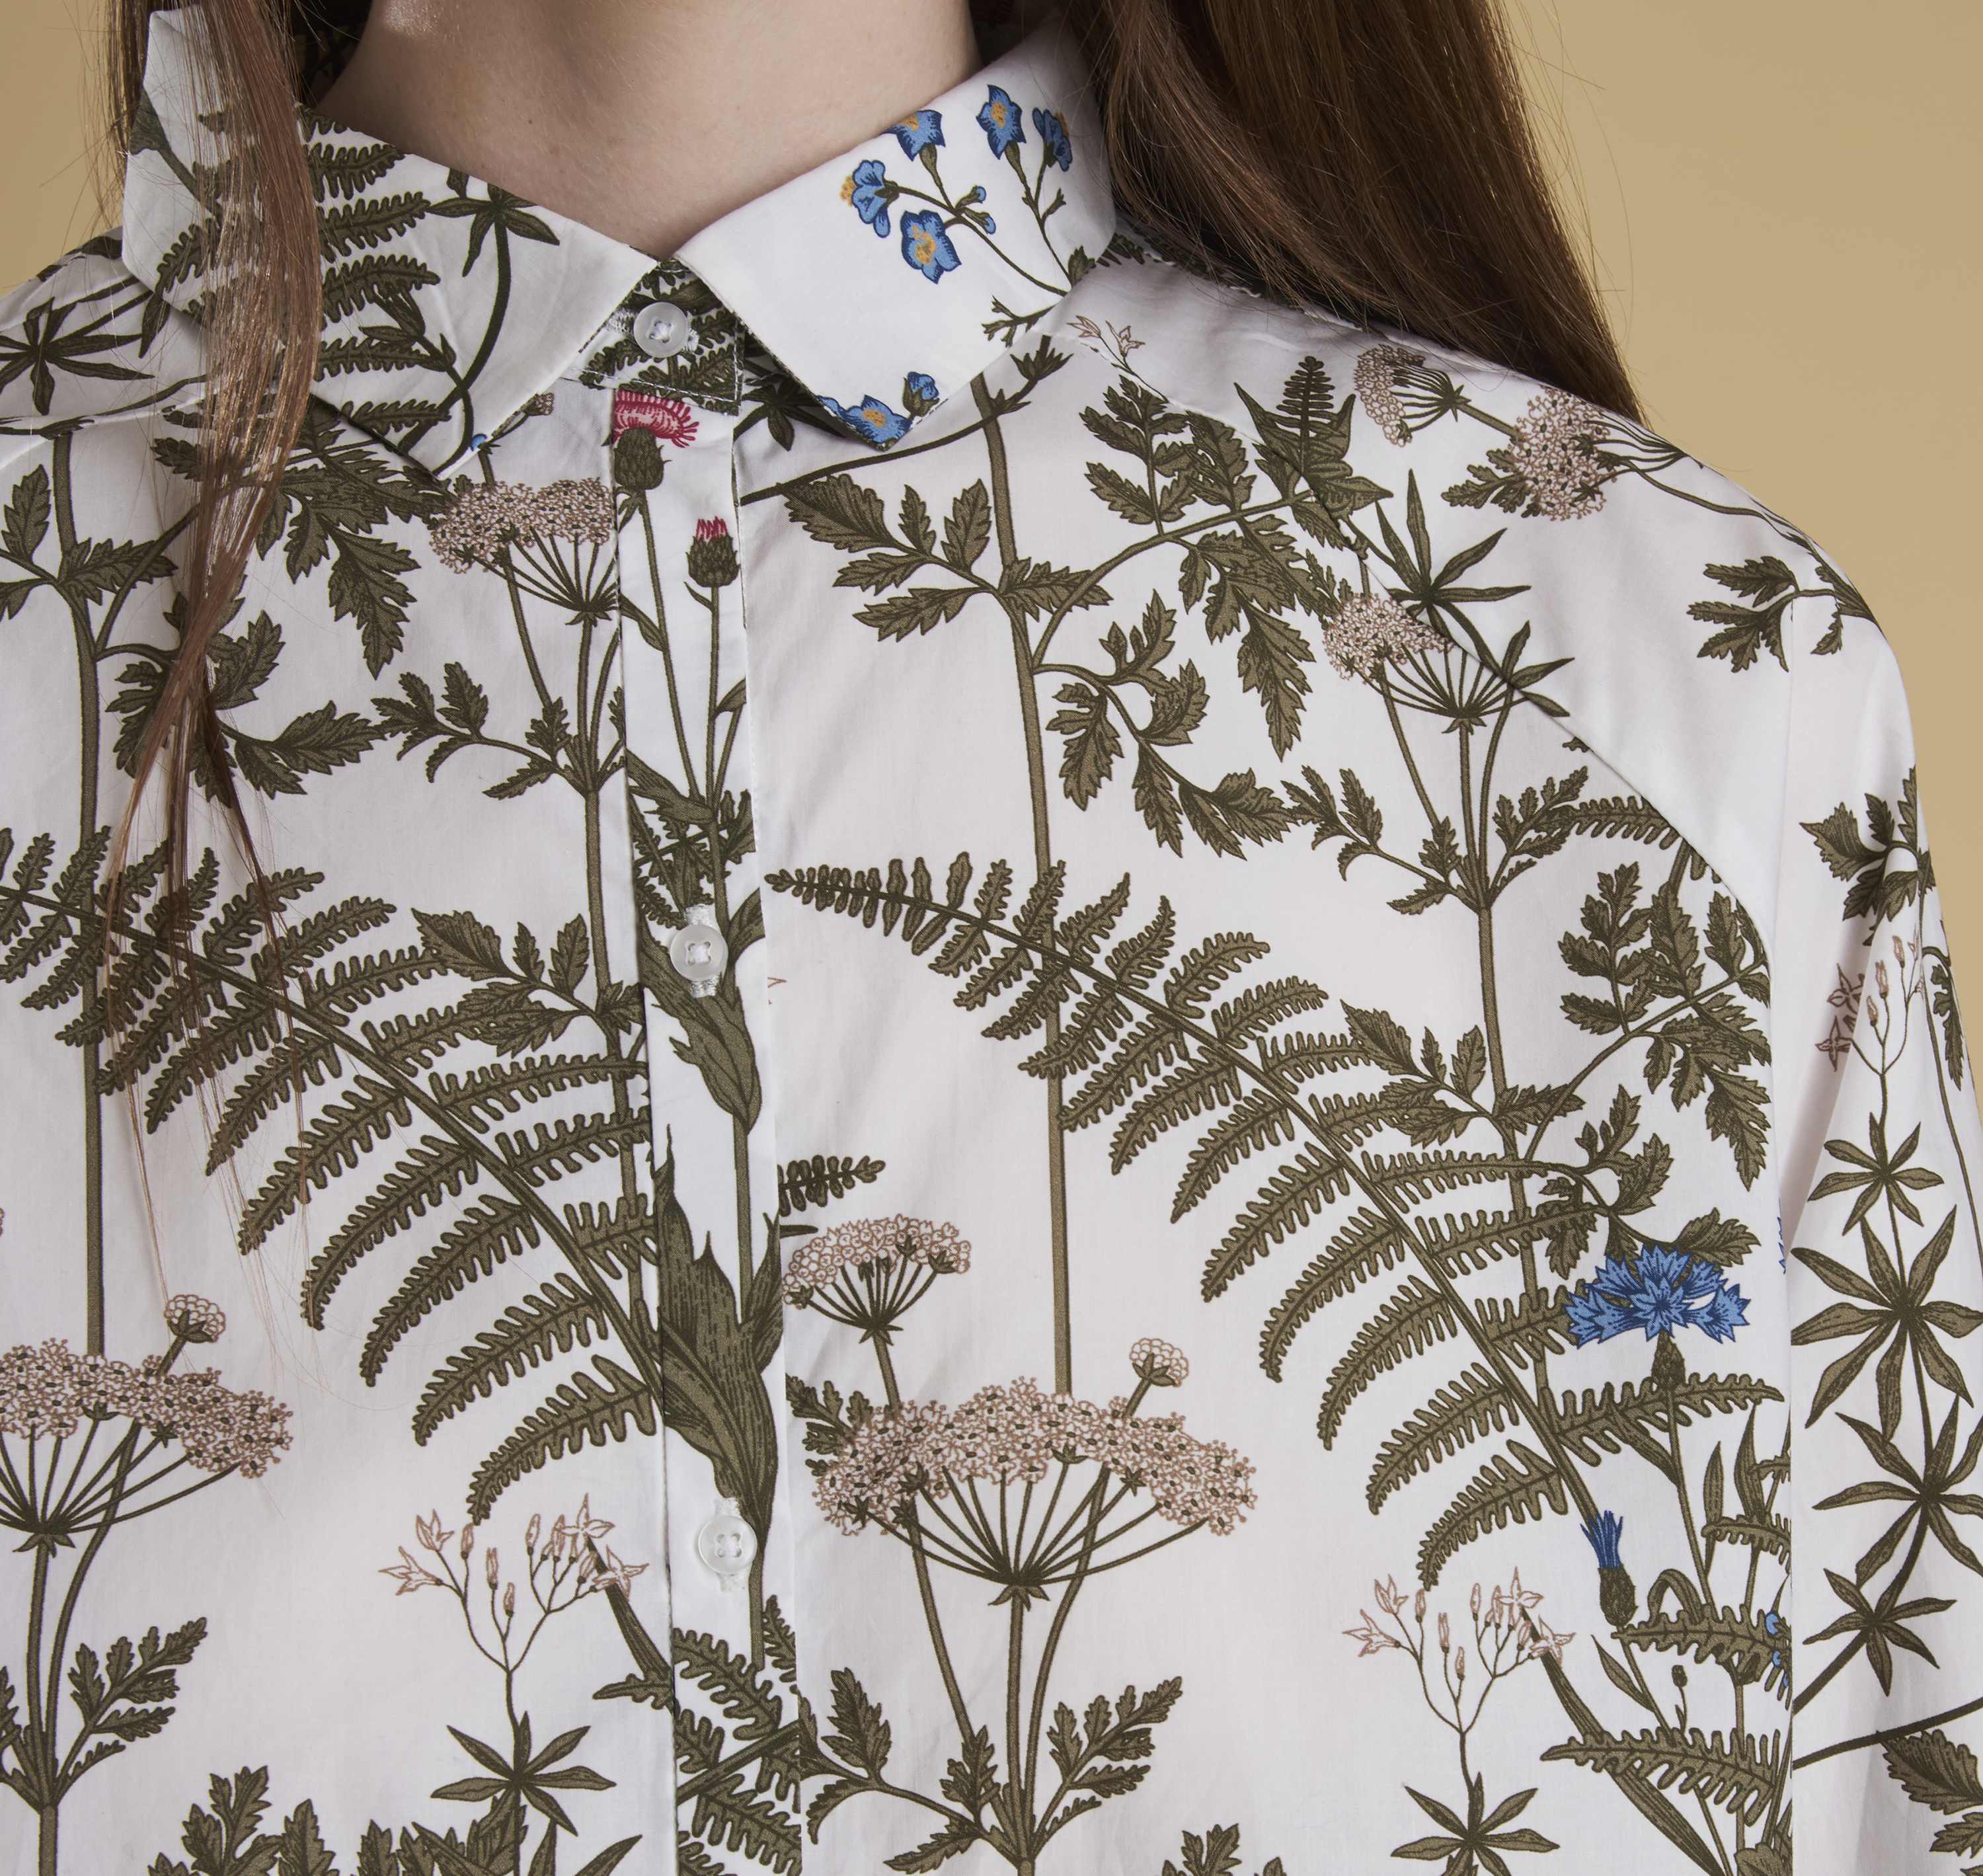 Wildflower Printed Shirt - Illustration n°7